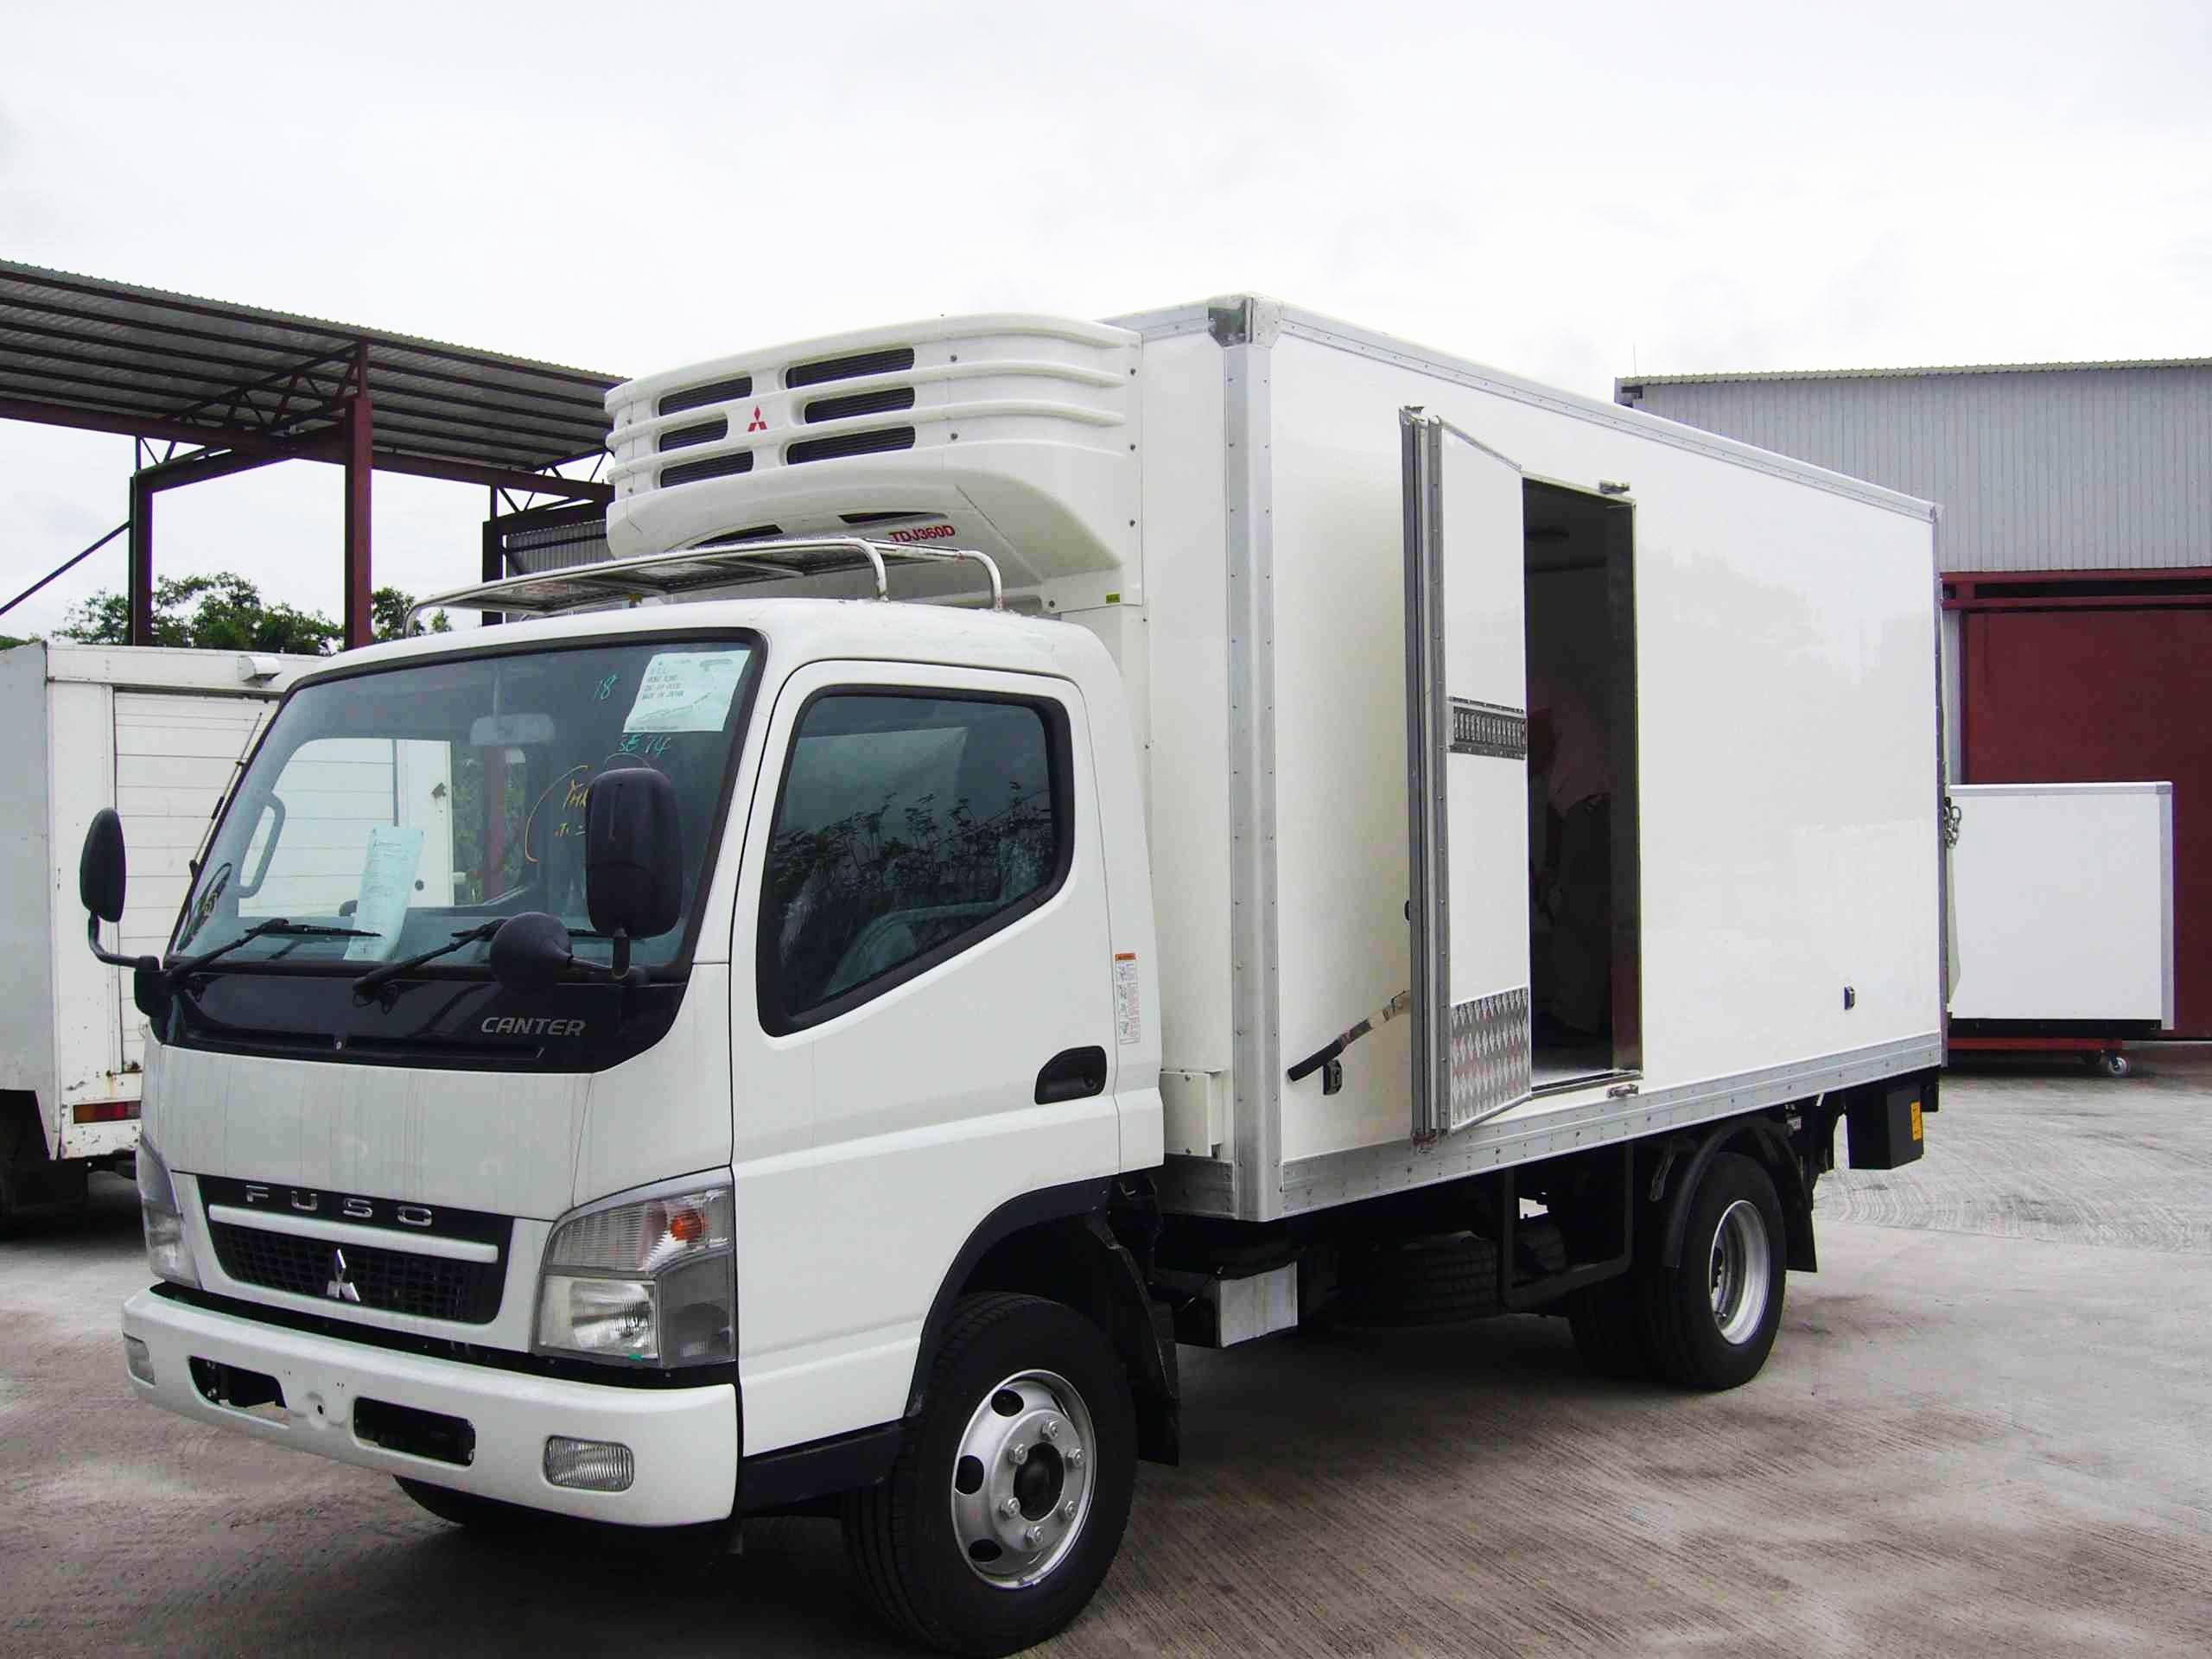 Refrigerated Truck Vehicle : China refrigerated truck body refrigeration